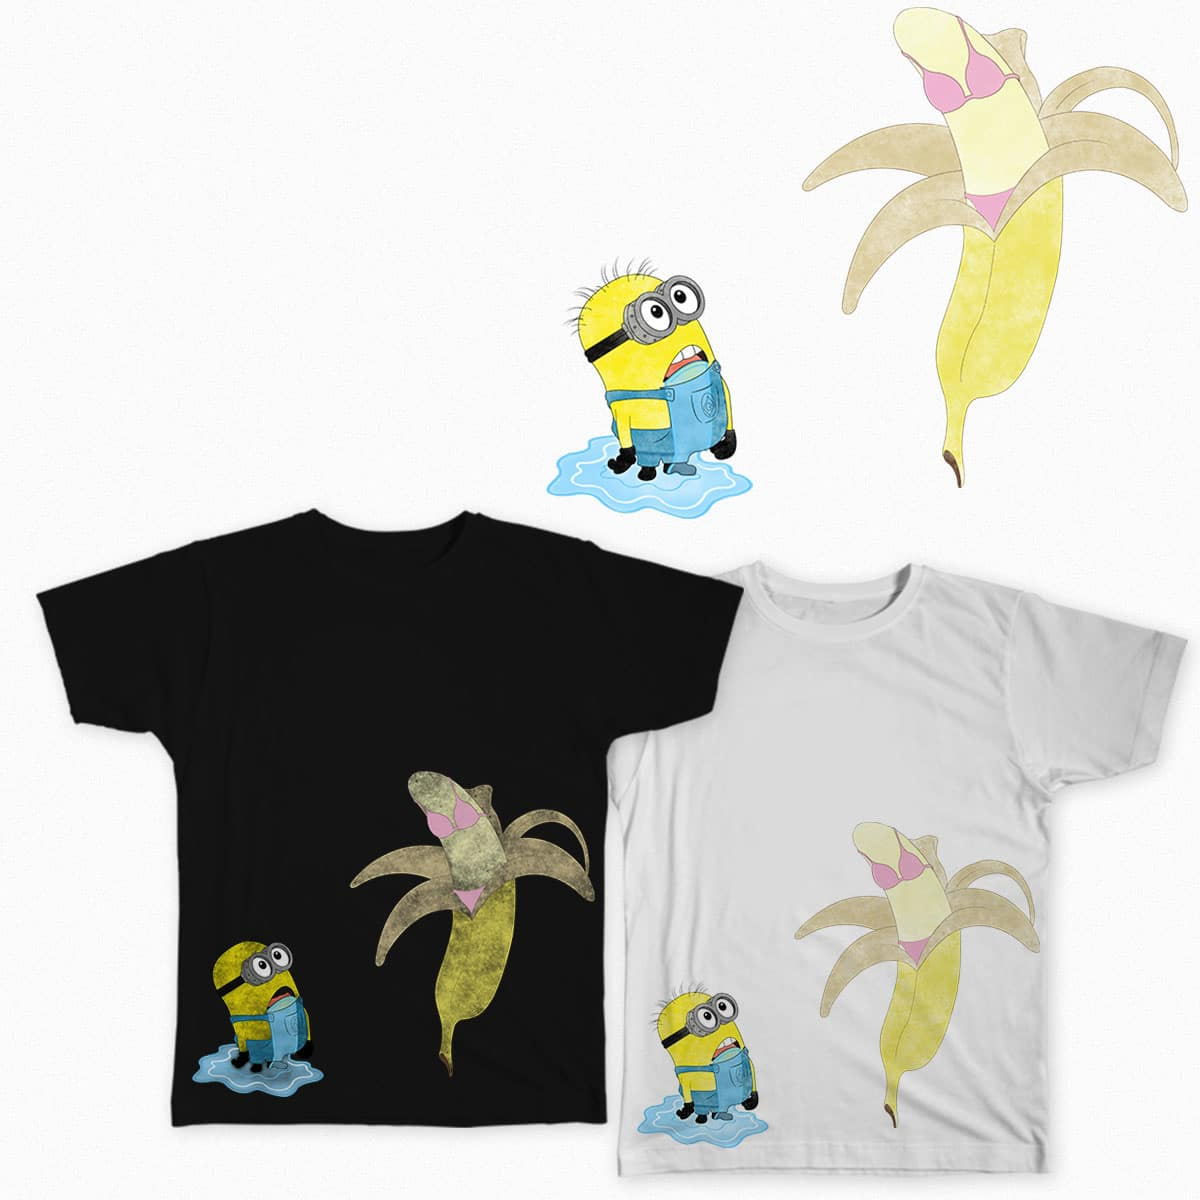 MINION WILL ALWAYS BE MINION by fashiondesire on Threadless